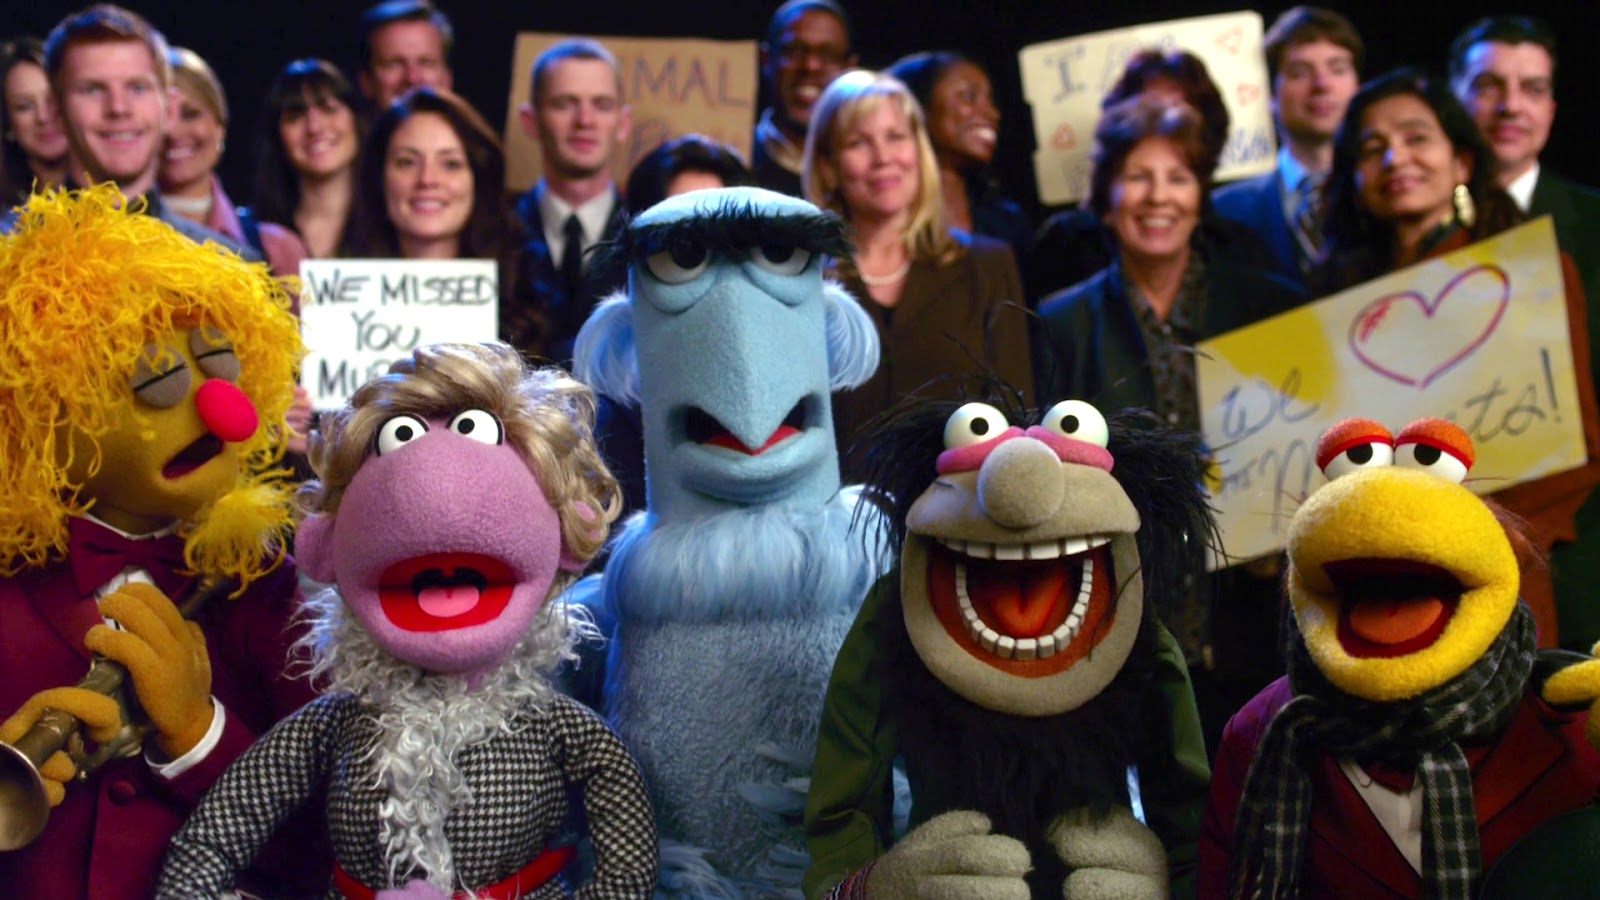 Obscuremuppetmovie on No One Cares About Crazy People